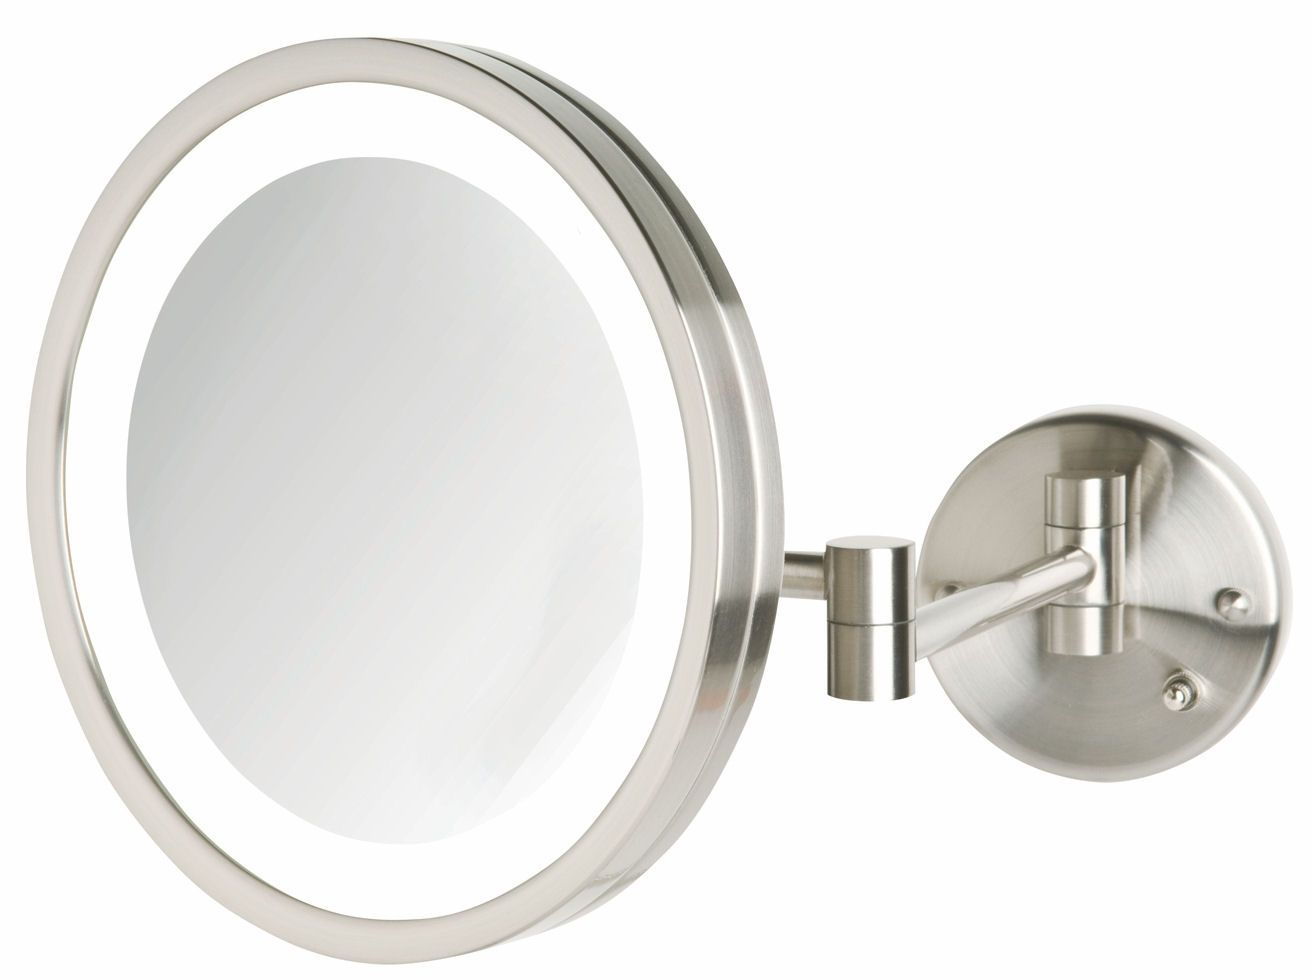 Lighted makeup mirror wall mount 10x print textures pinterest lighted makeup mirror wall mount 10x aloadofball Image collections